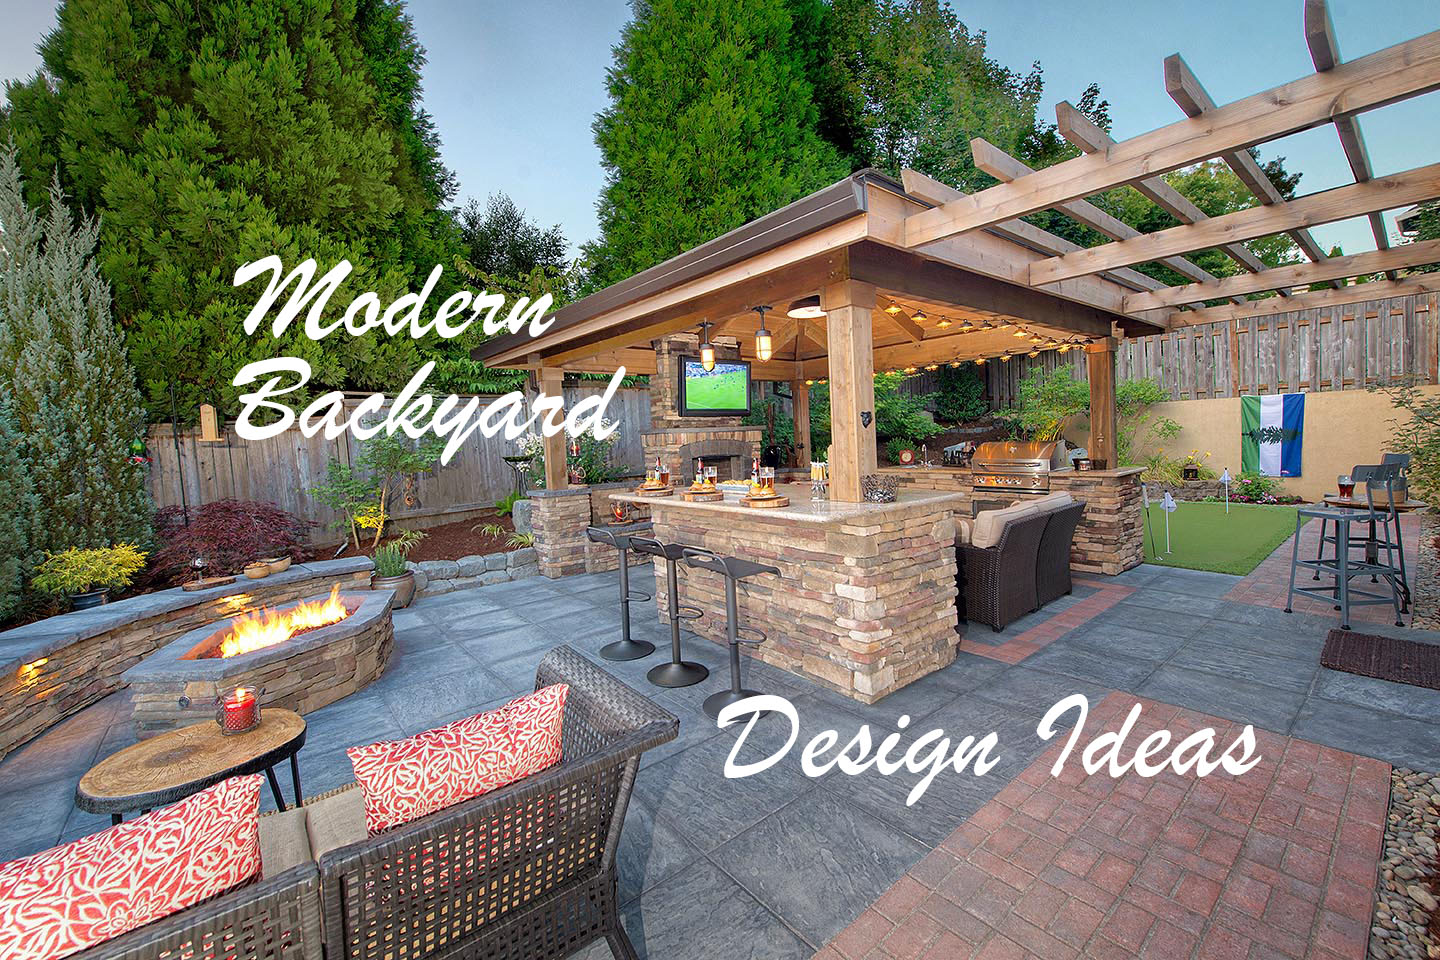 Modern Backyard Design Ideas Paradise Restored Landscaping